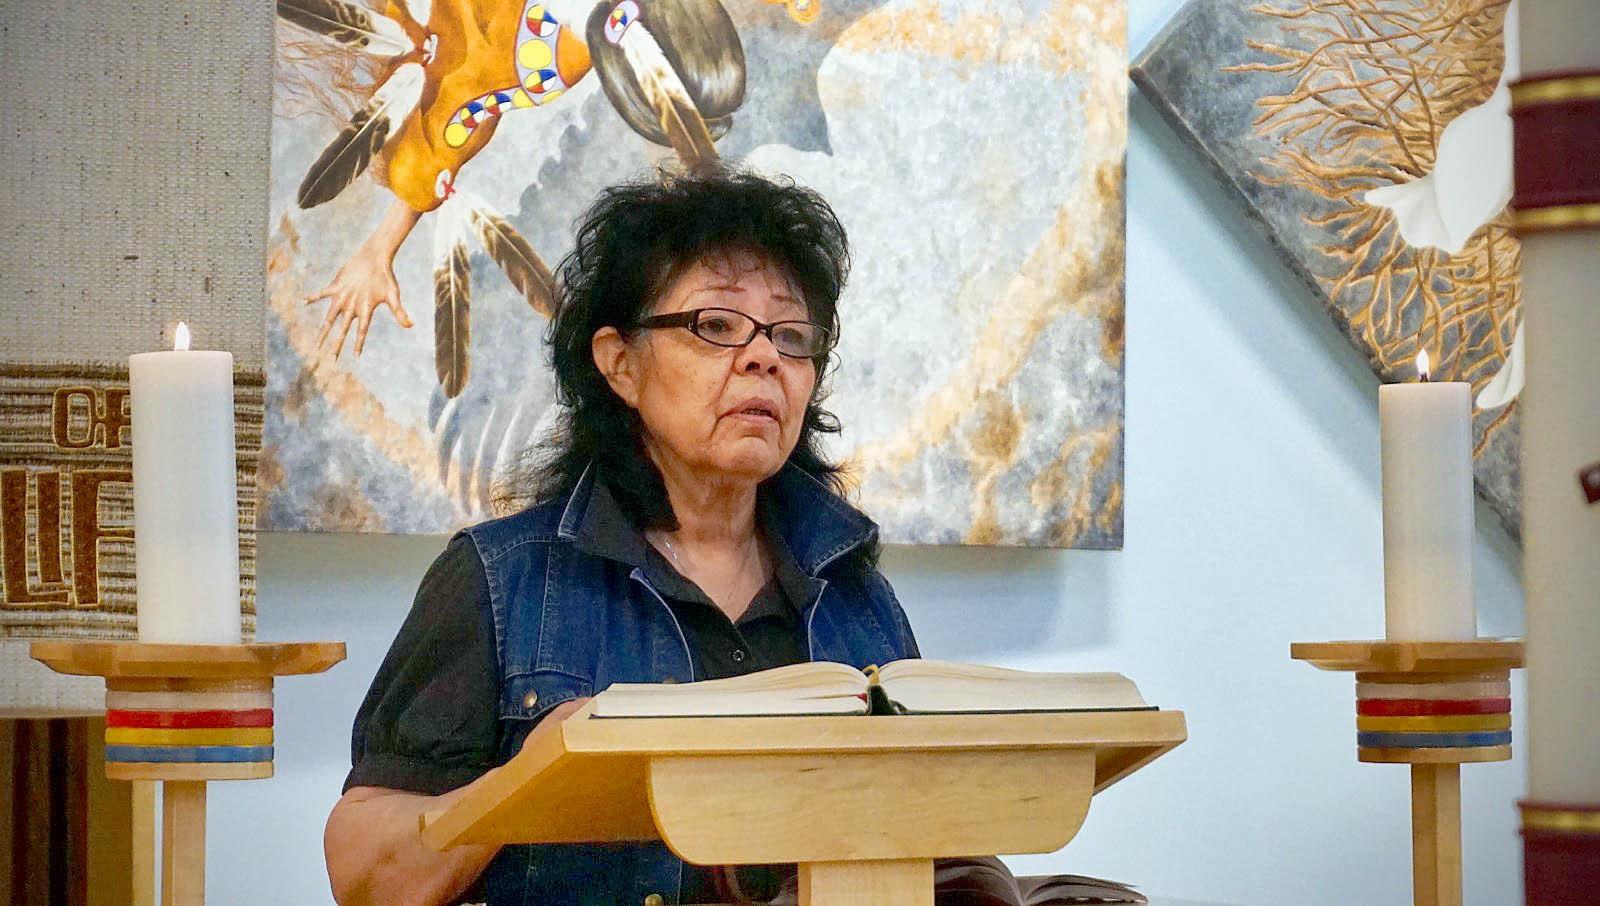 Indigenous Catholics long to return to church family and sacraments